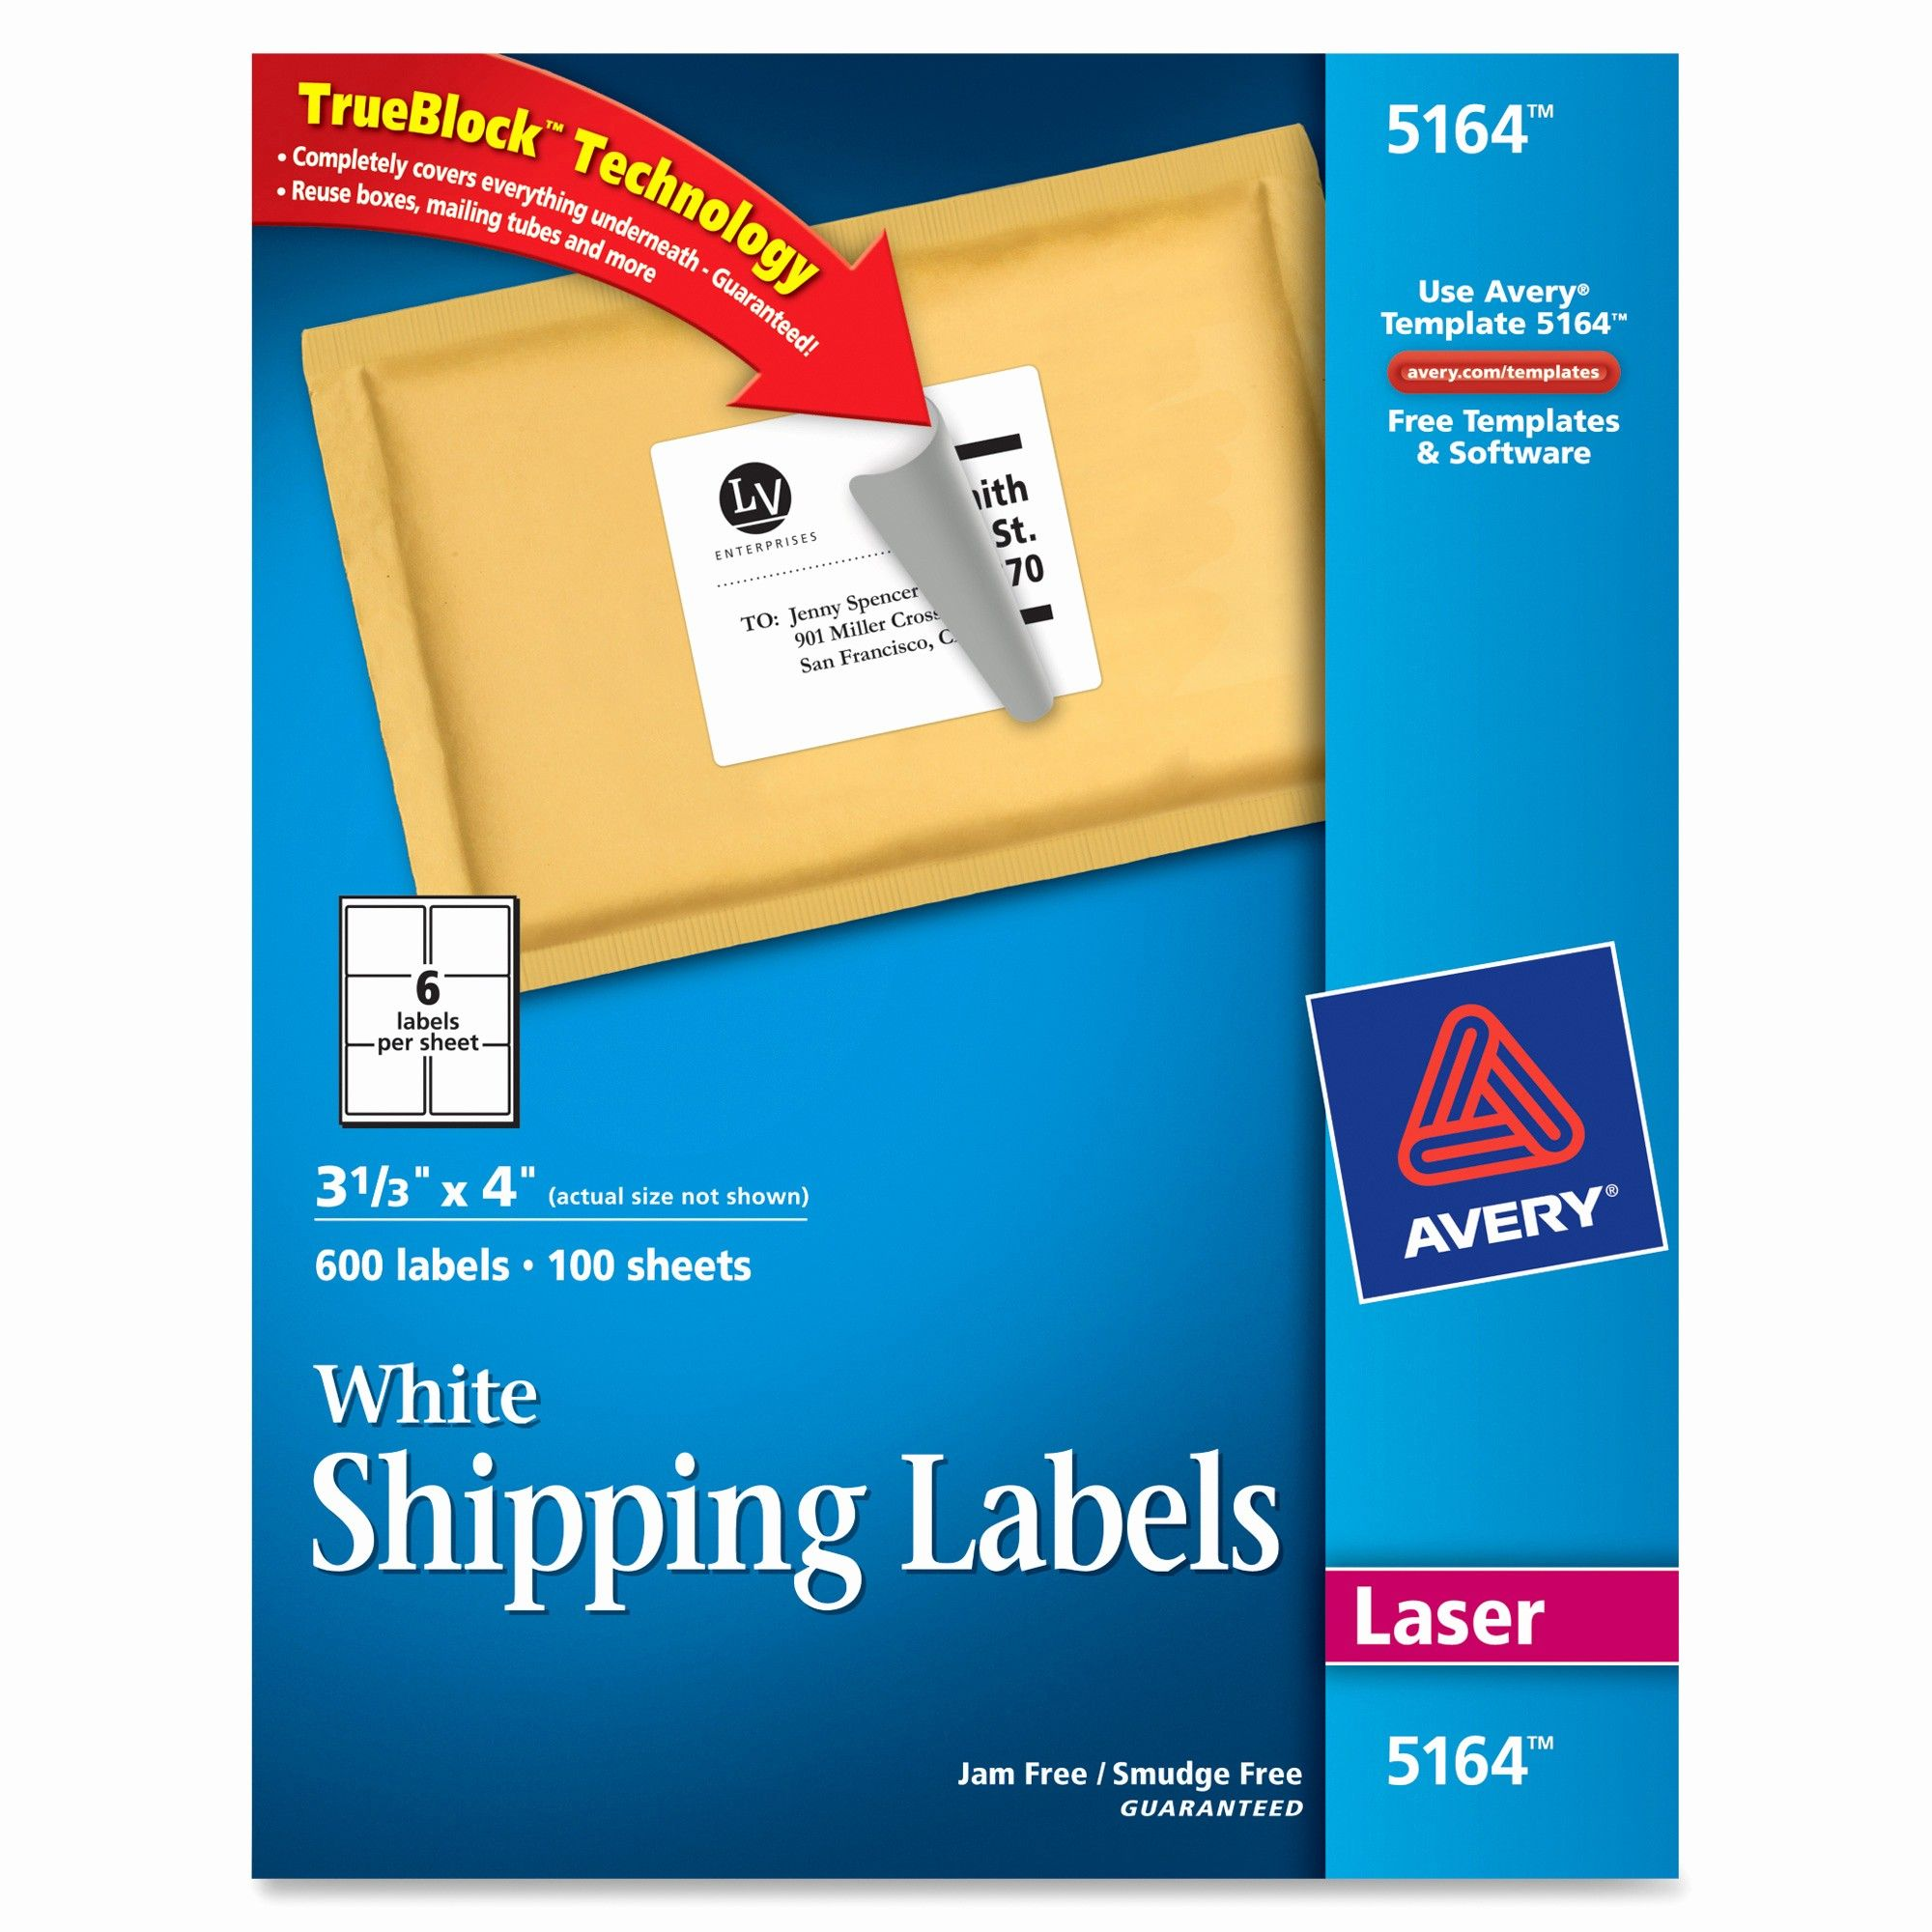 Avery Label 6 Per Page Awesome Avery 5164 Easy Peel White Shipping Labels Permanent Address Label Template Return Address Labels Template Label Templates Avery label 6 per page